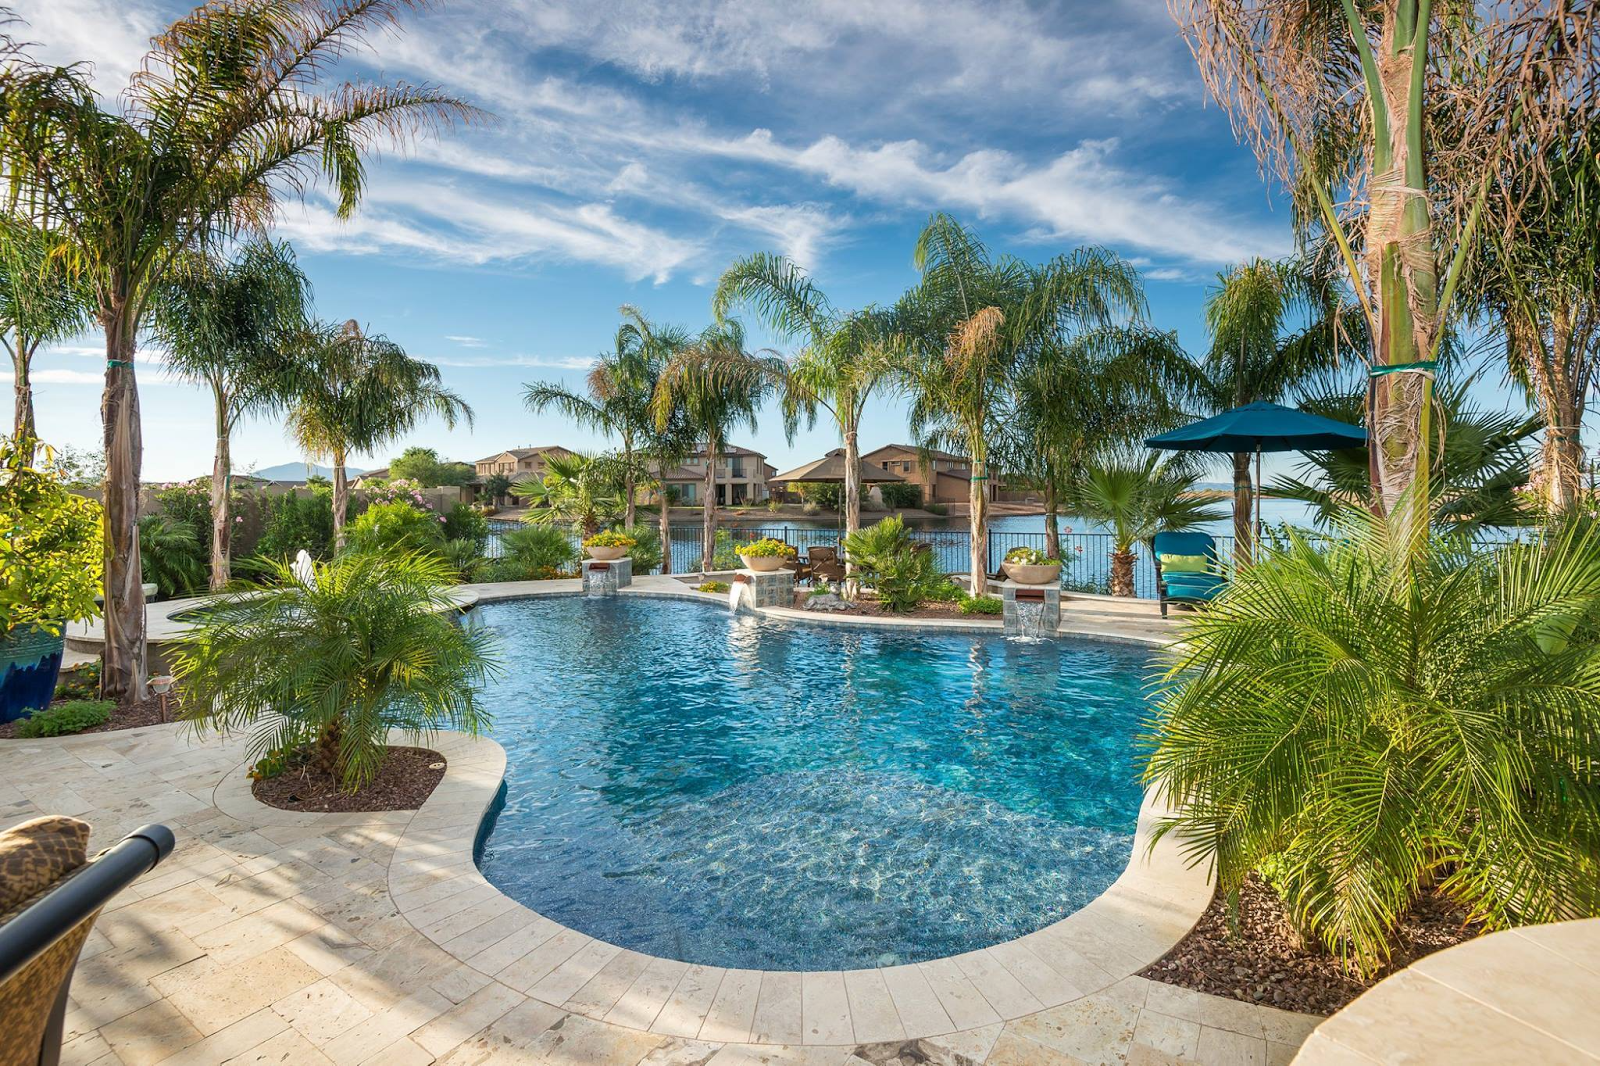 Your Pool Company Guide